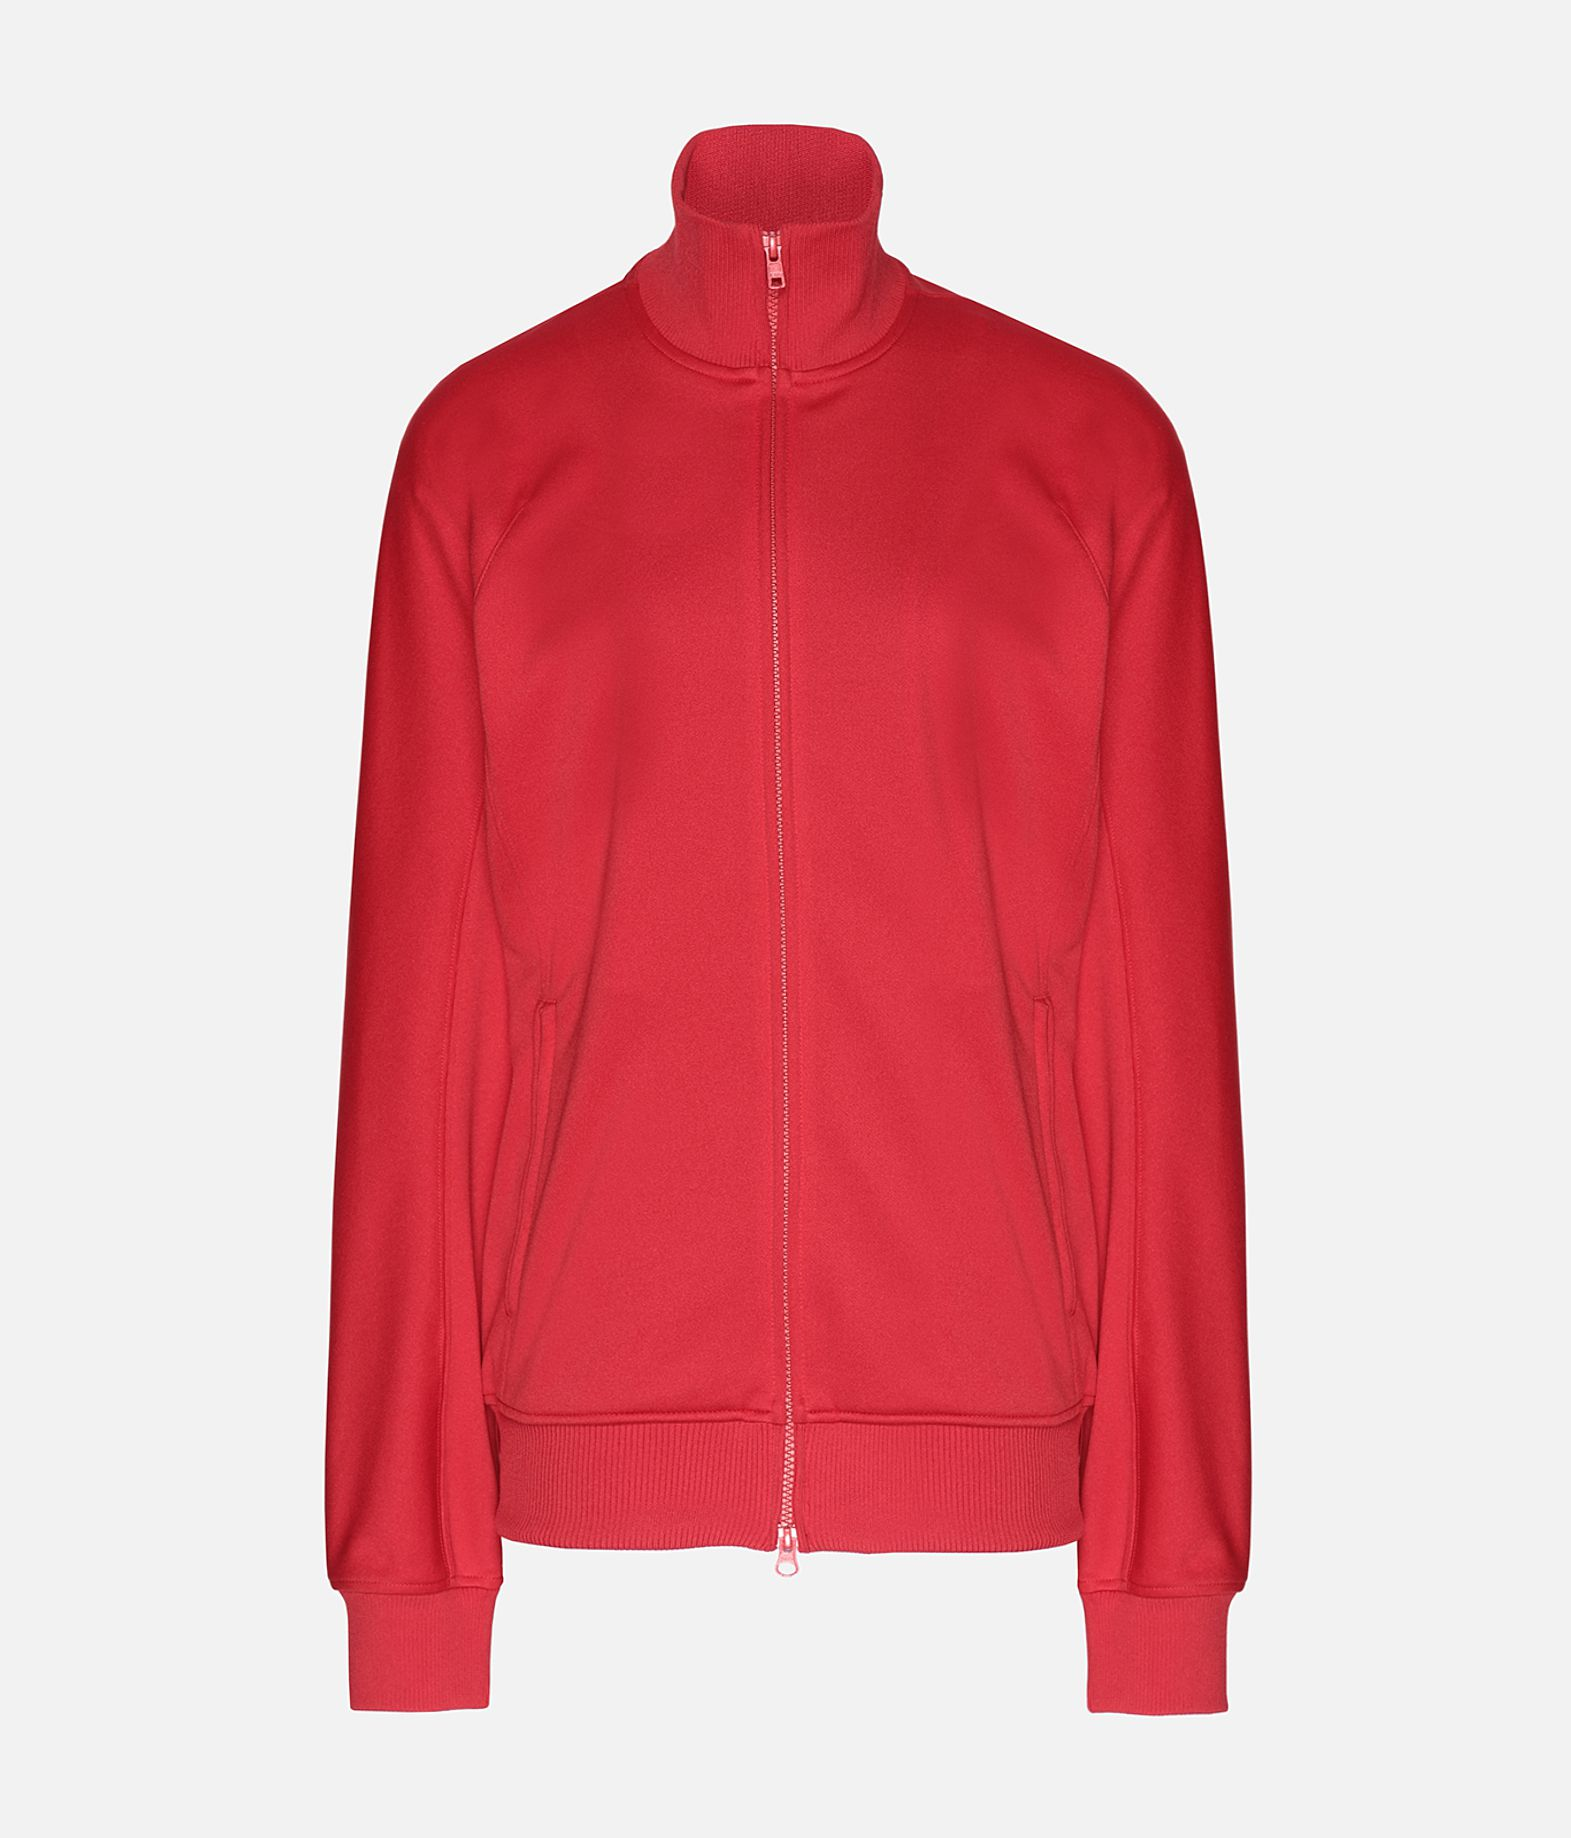 Y-3 Y-3 Classic Track Jacket Track top Woman f